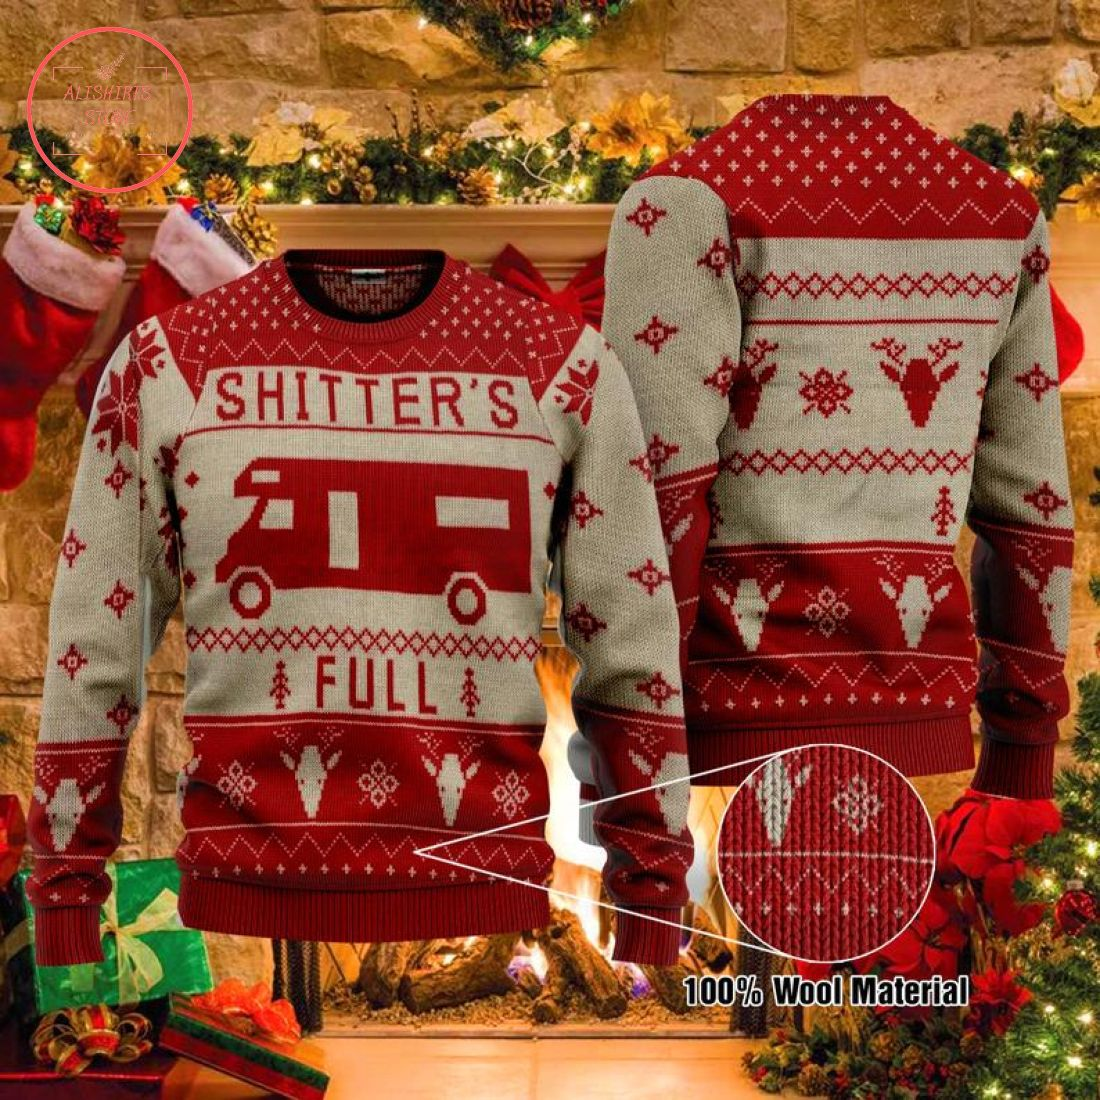 Christmas Vacation Shitter's Full Movie Ugly Christmas Sweater